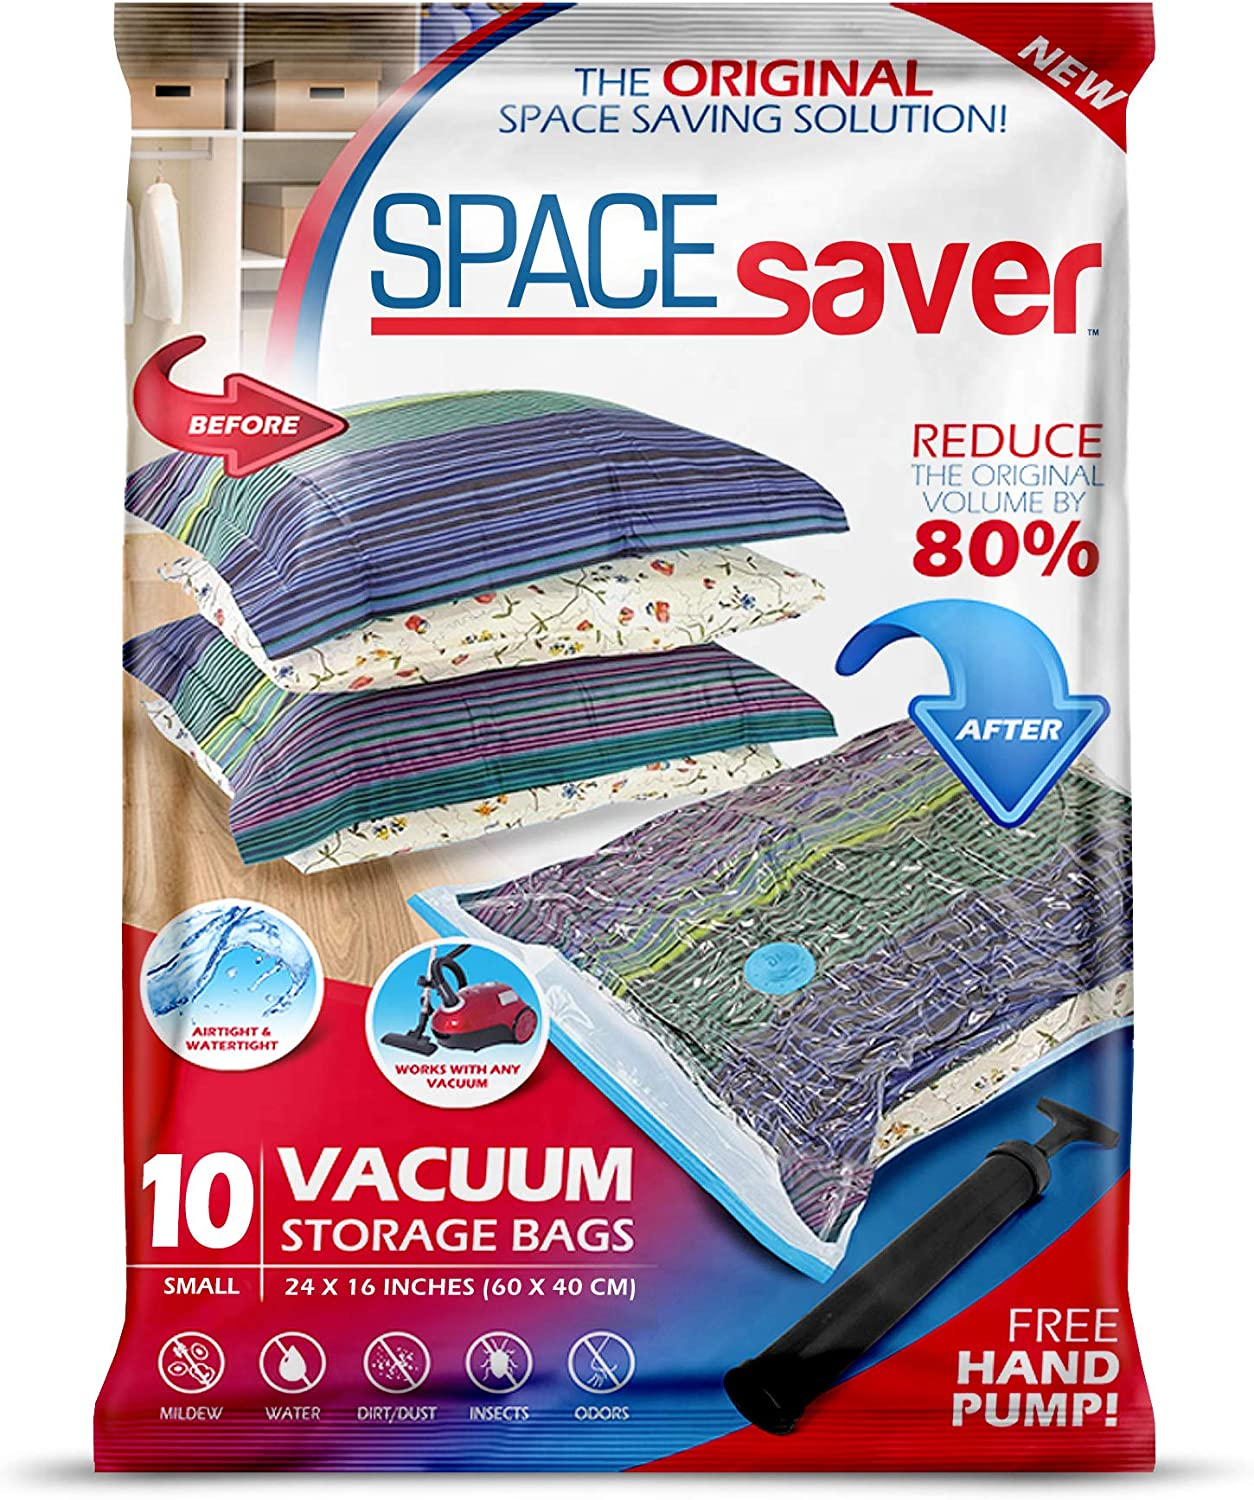 Spacesaver Premium Vacuum Storage Bags. 80% More Storage! Hand-Pump for Travel! Double-Zip Seal and Triple Seal Turbo-Valve for Max Space Saving! (Small 10 Pack)